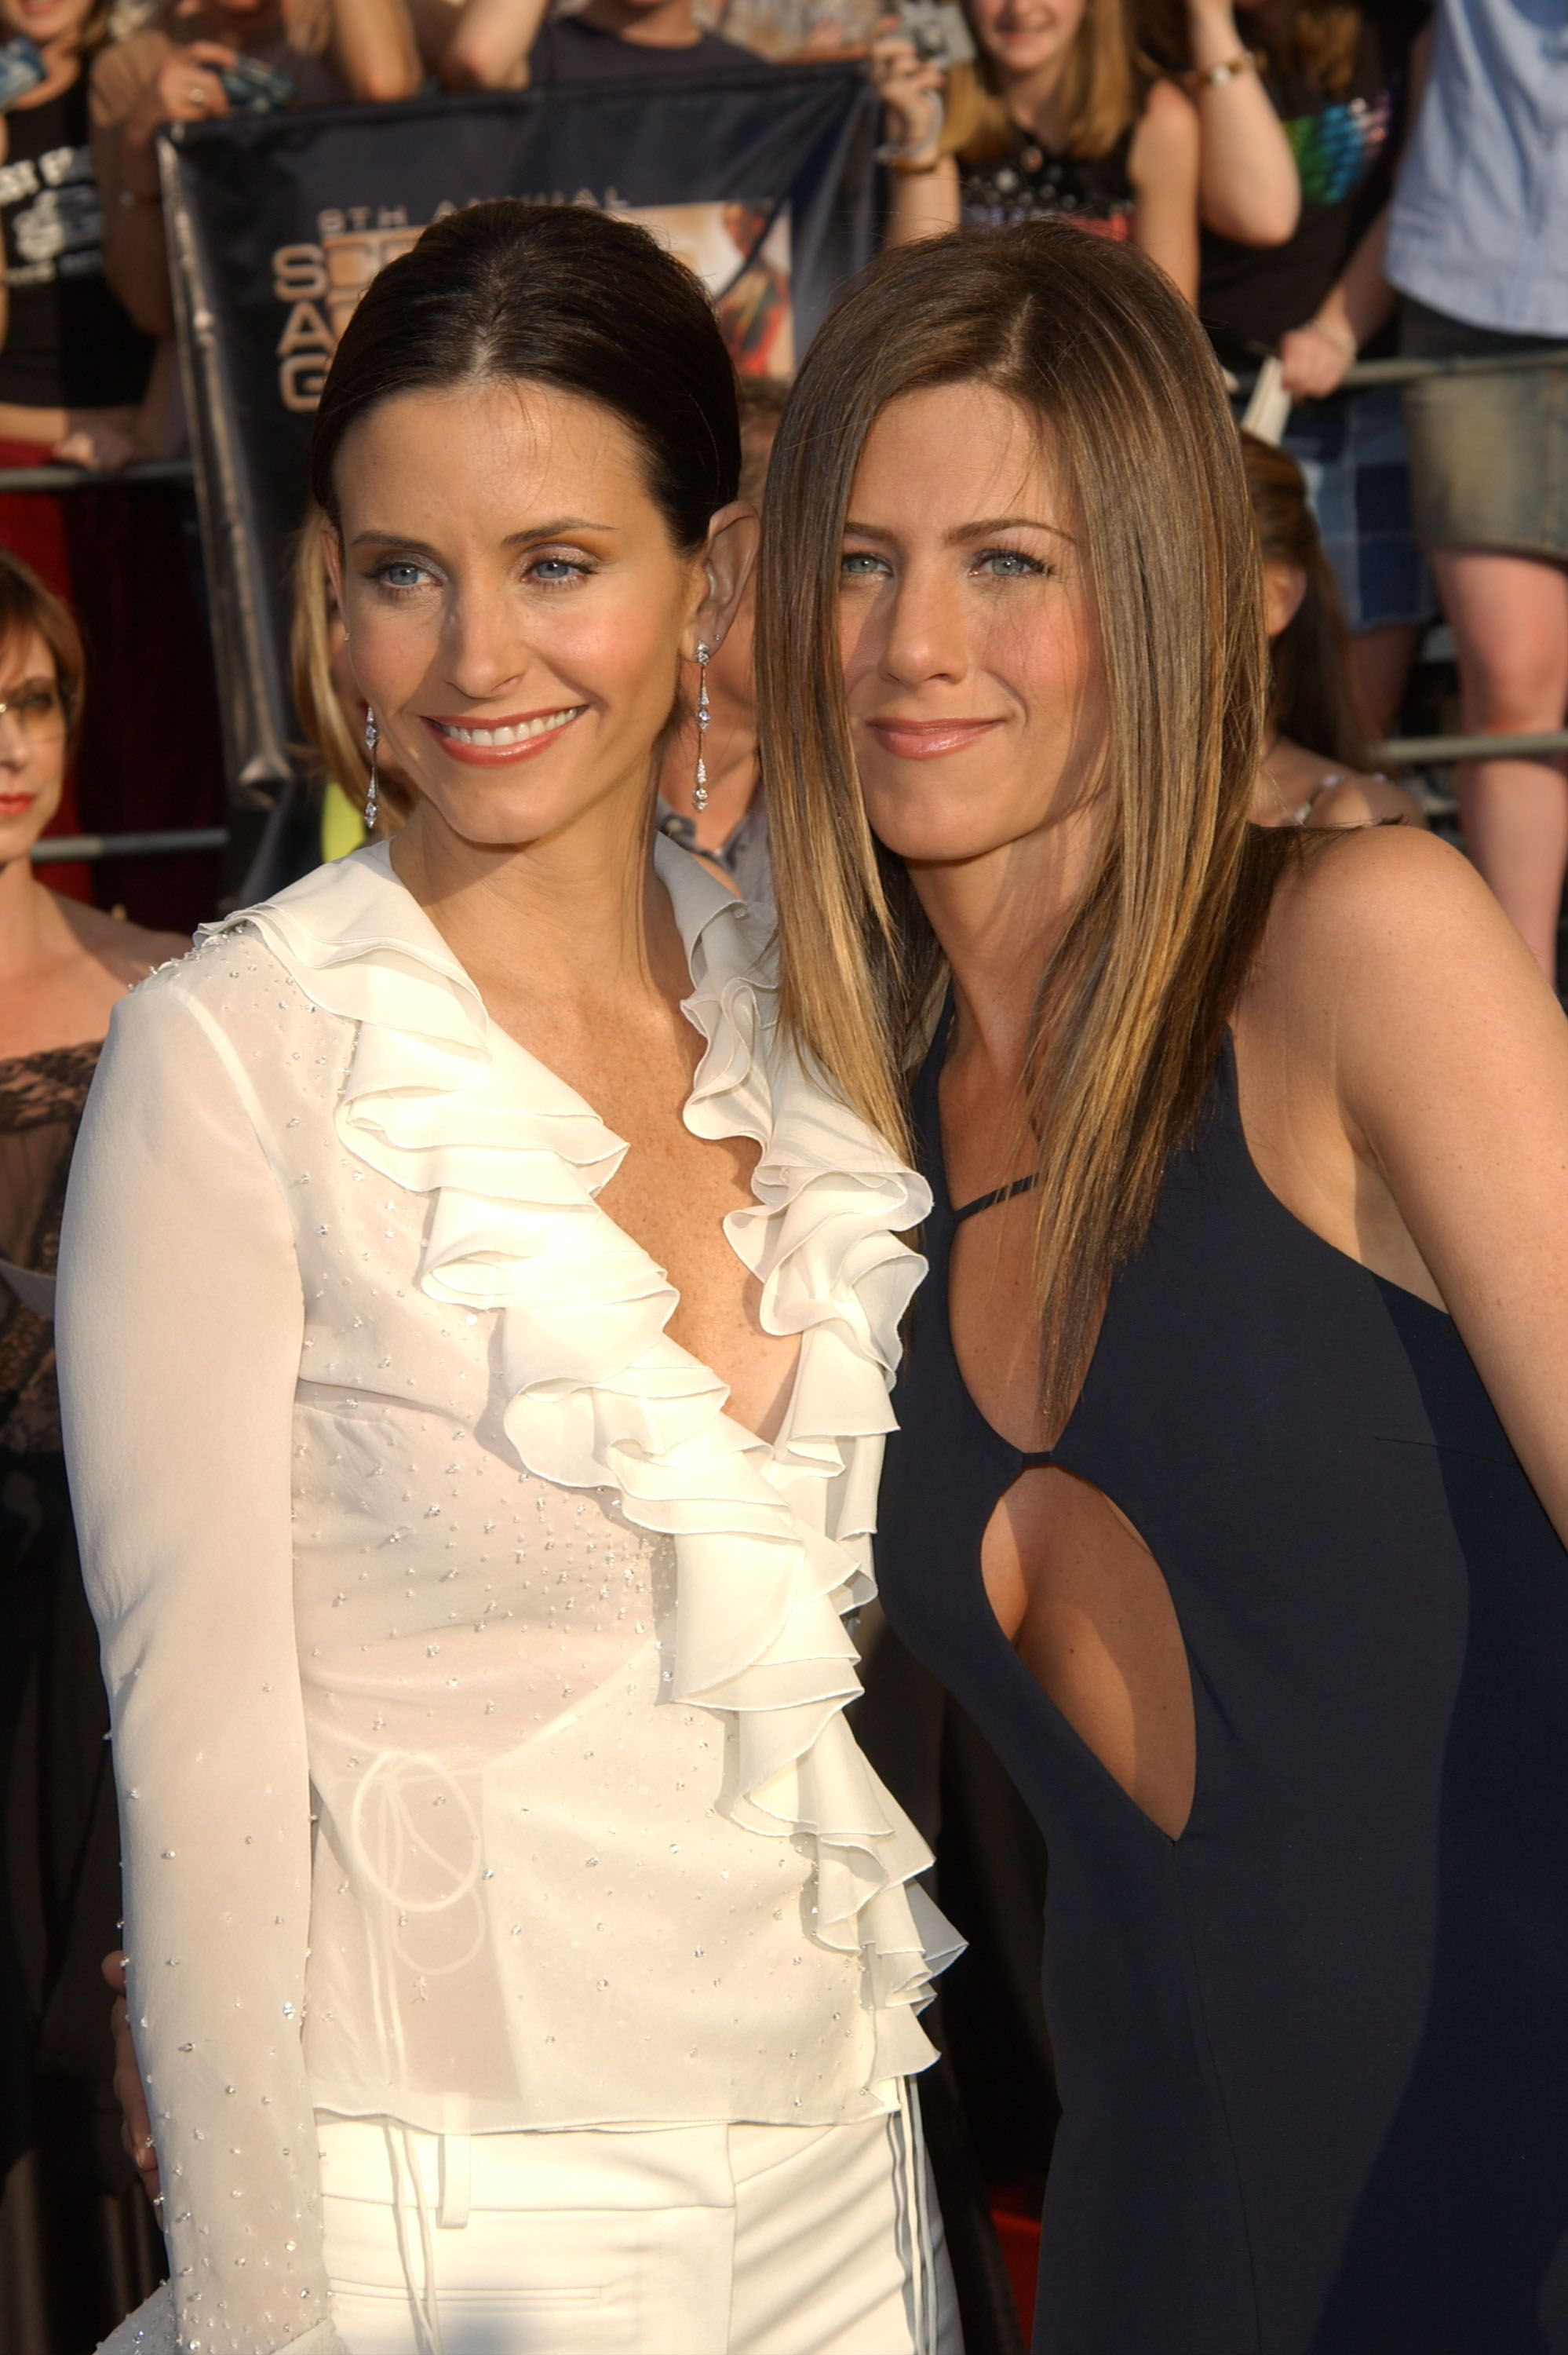 Jennifer Aniston and Courteney Cox at an event